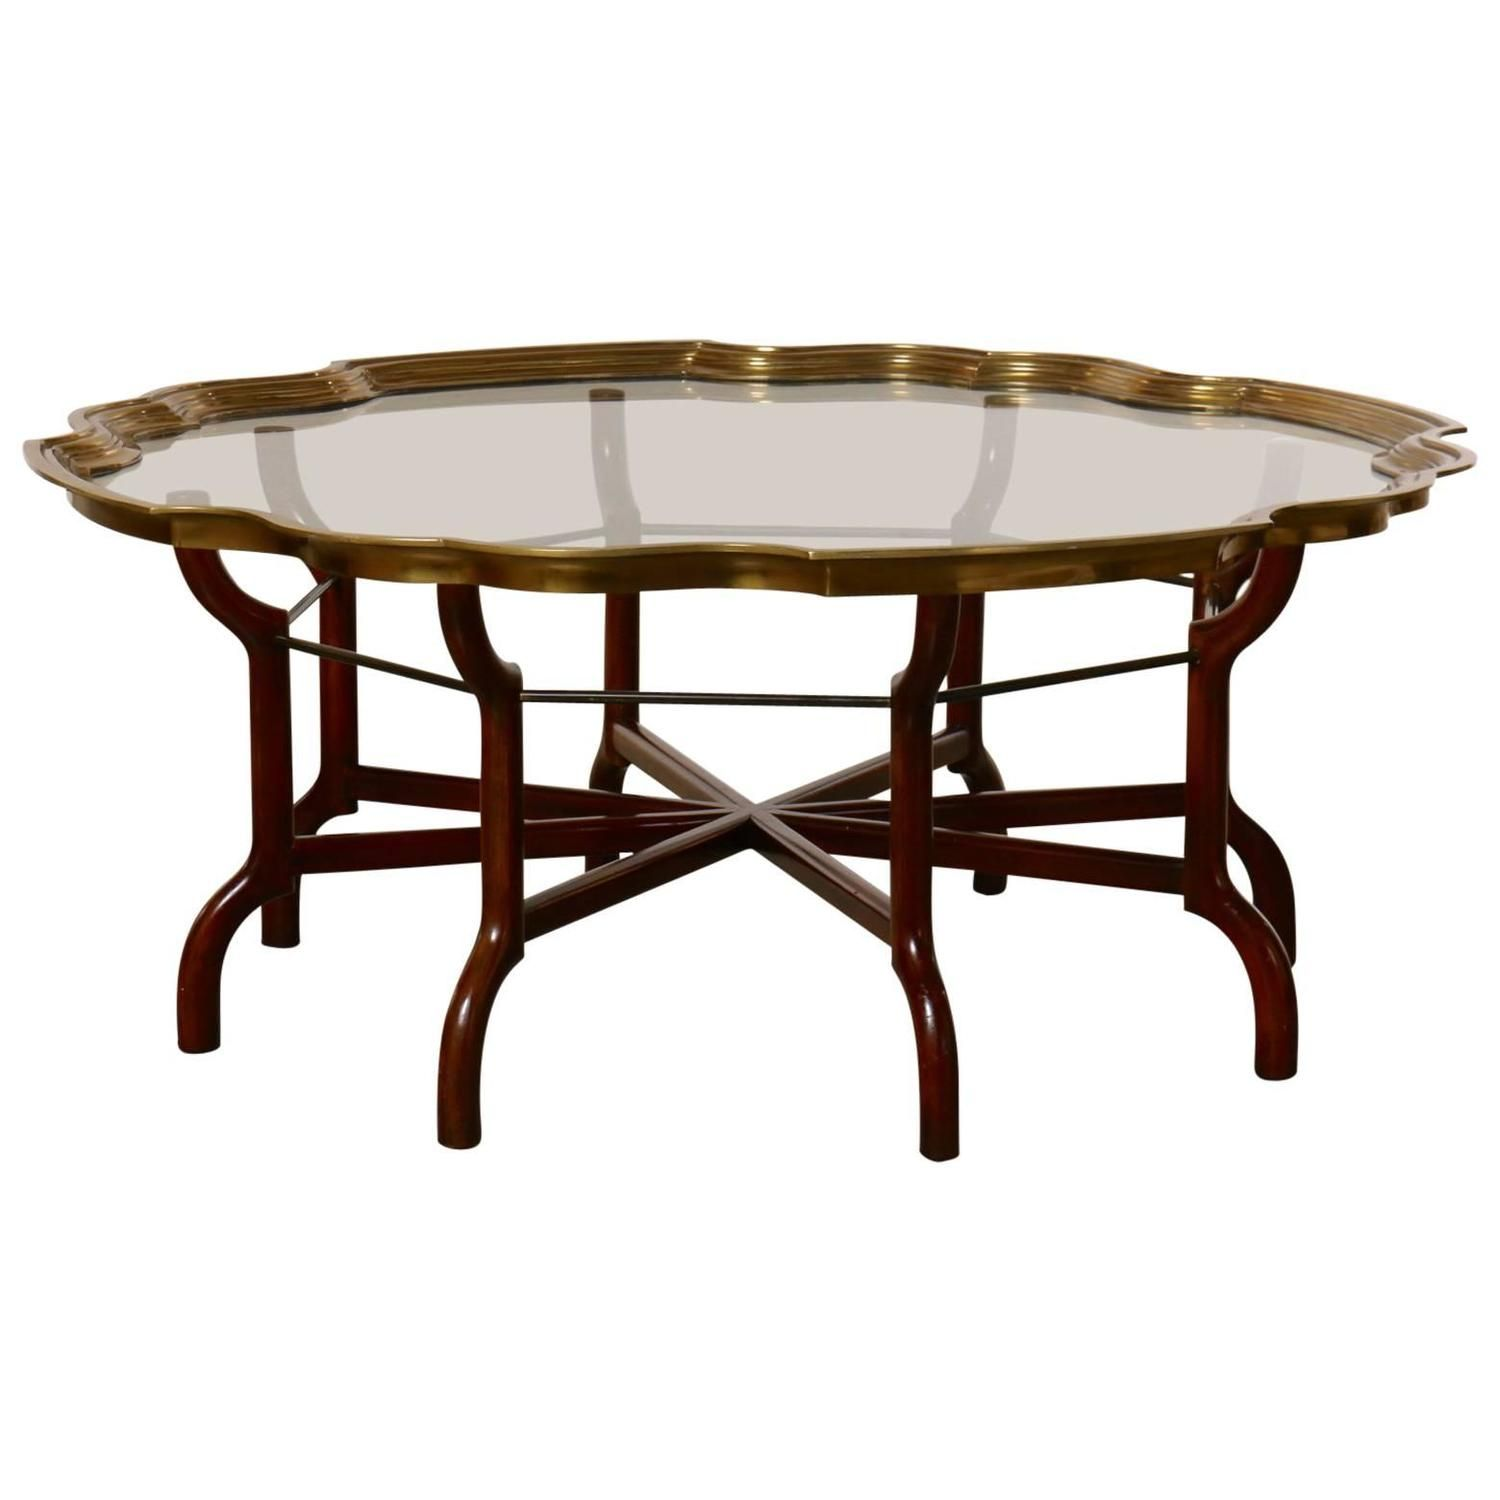 Best Baker Brass And Glass Round Tray Top Coffee Table For Sale 640 x 480